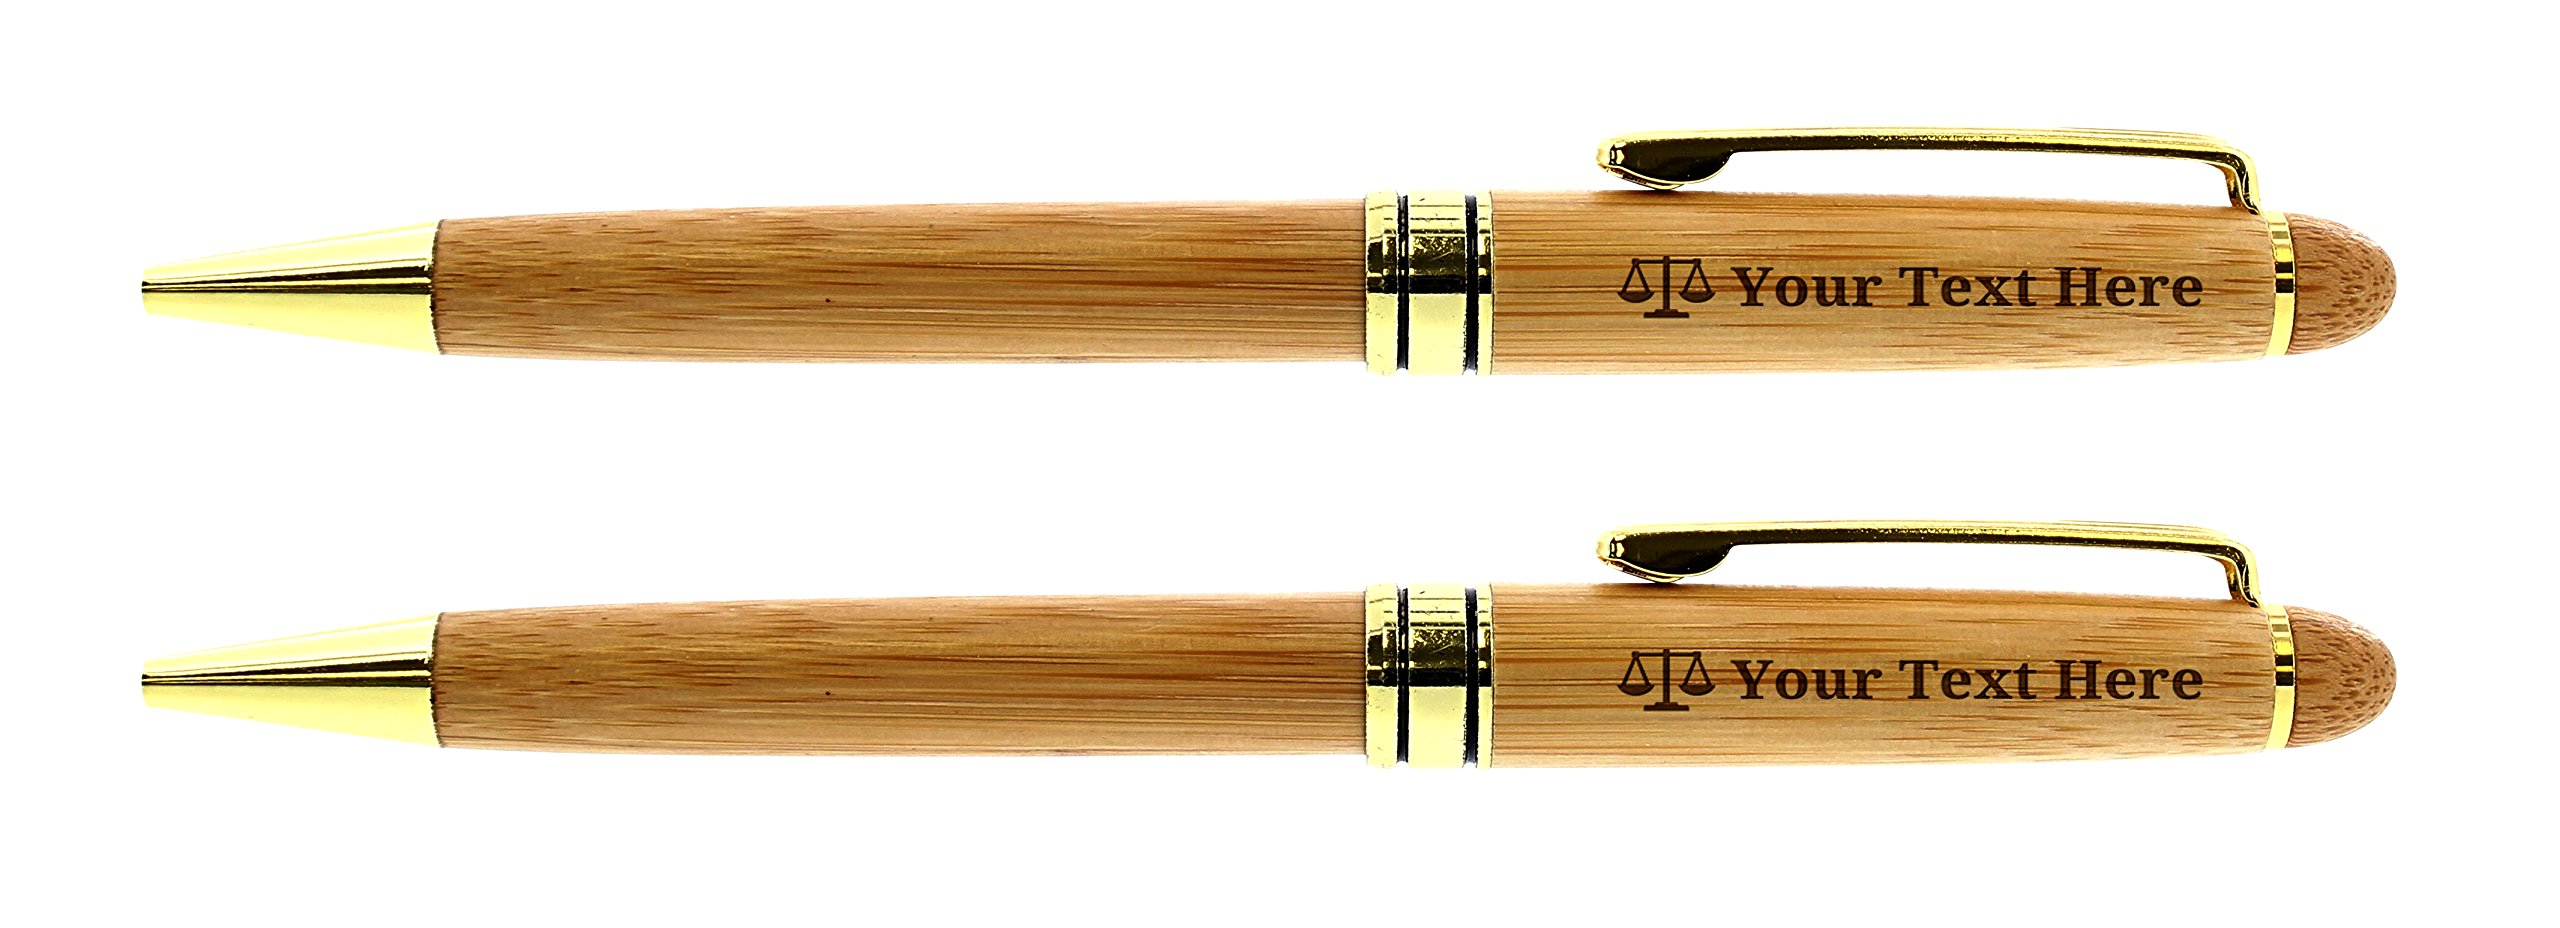 Customized Pens Scales of Justice New Lawyer Gifts Law School Graduation Gifts for Judges Gifts Court Officer Gifts Lawyer Pen Set 2-pack Personalized Laser Engraved Custom Wooden Bamboo Pen